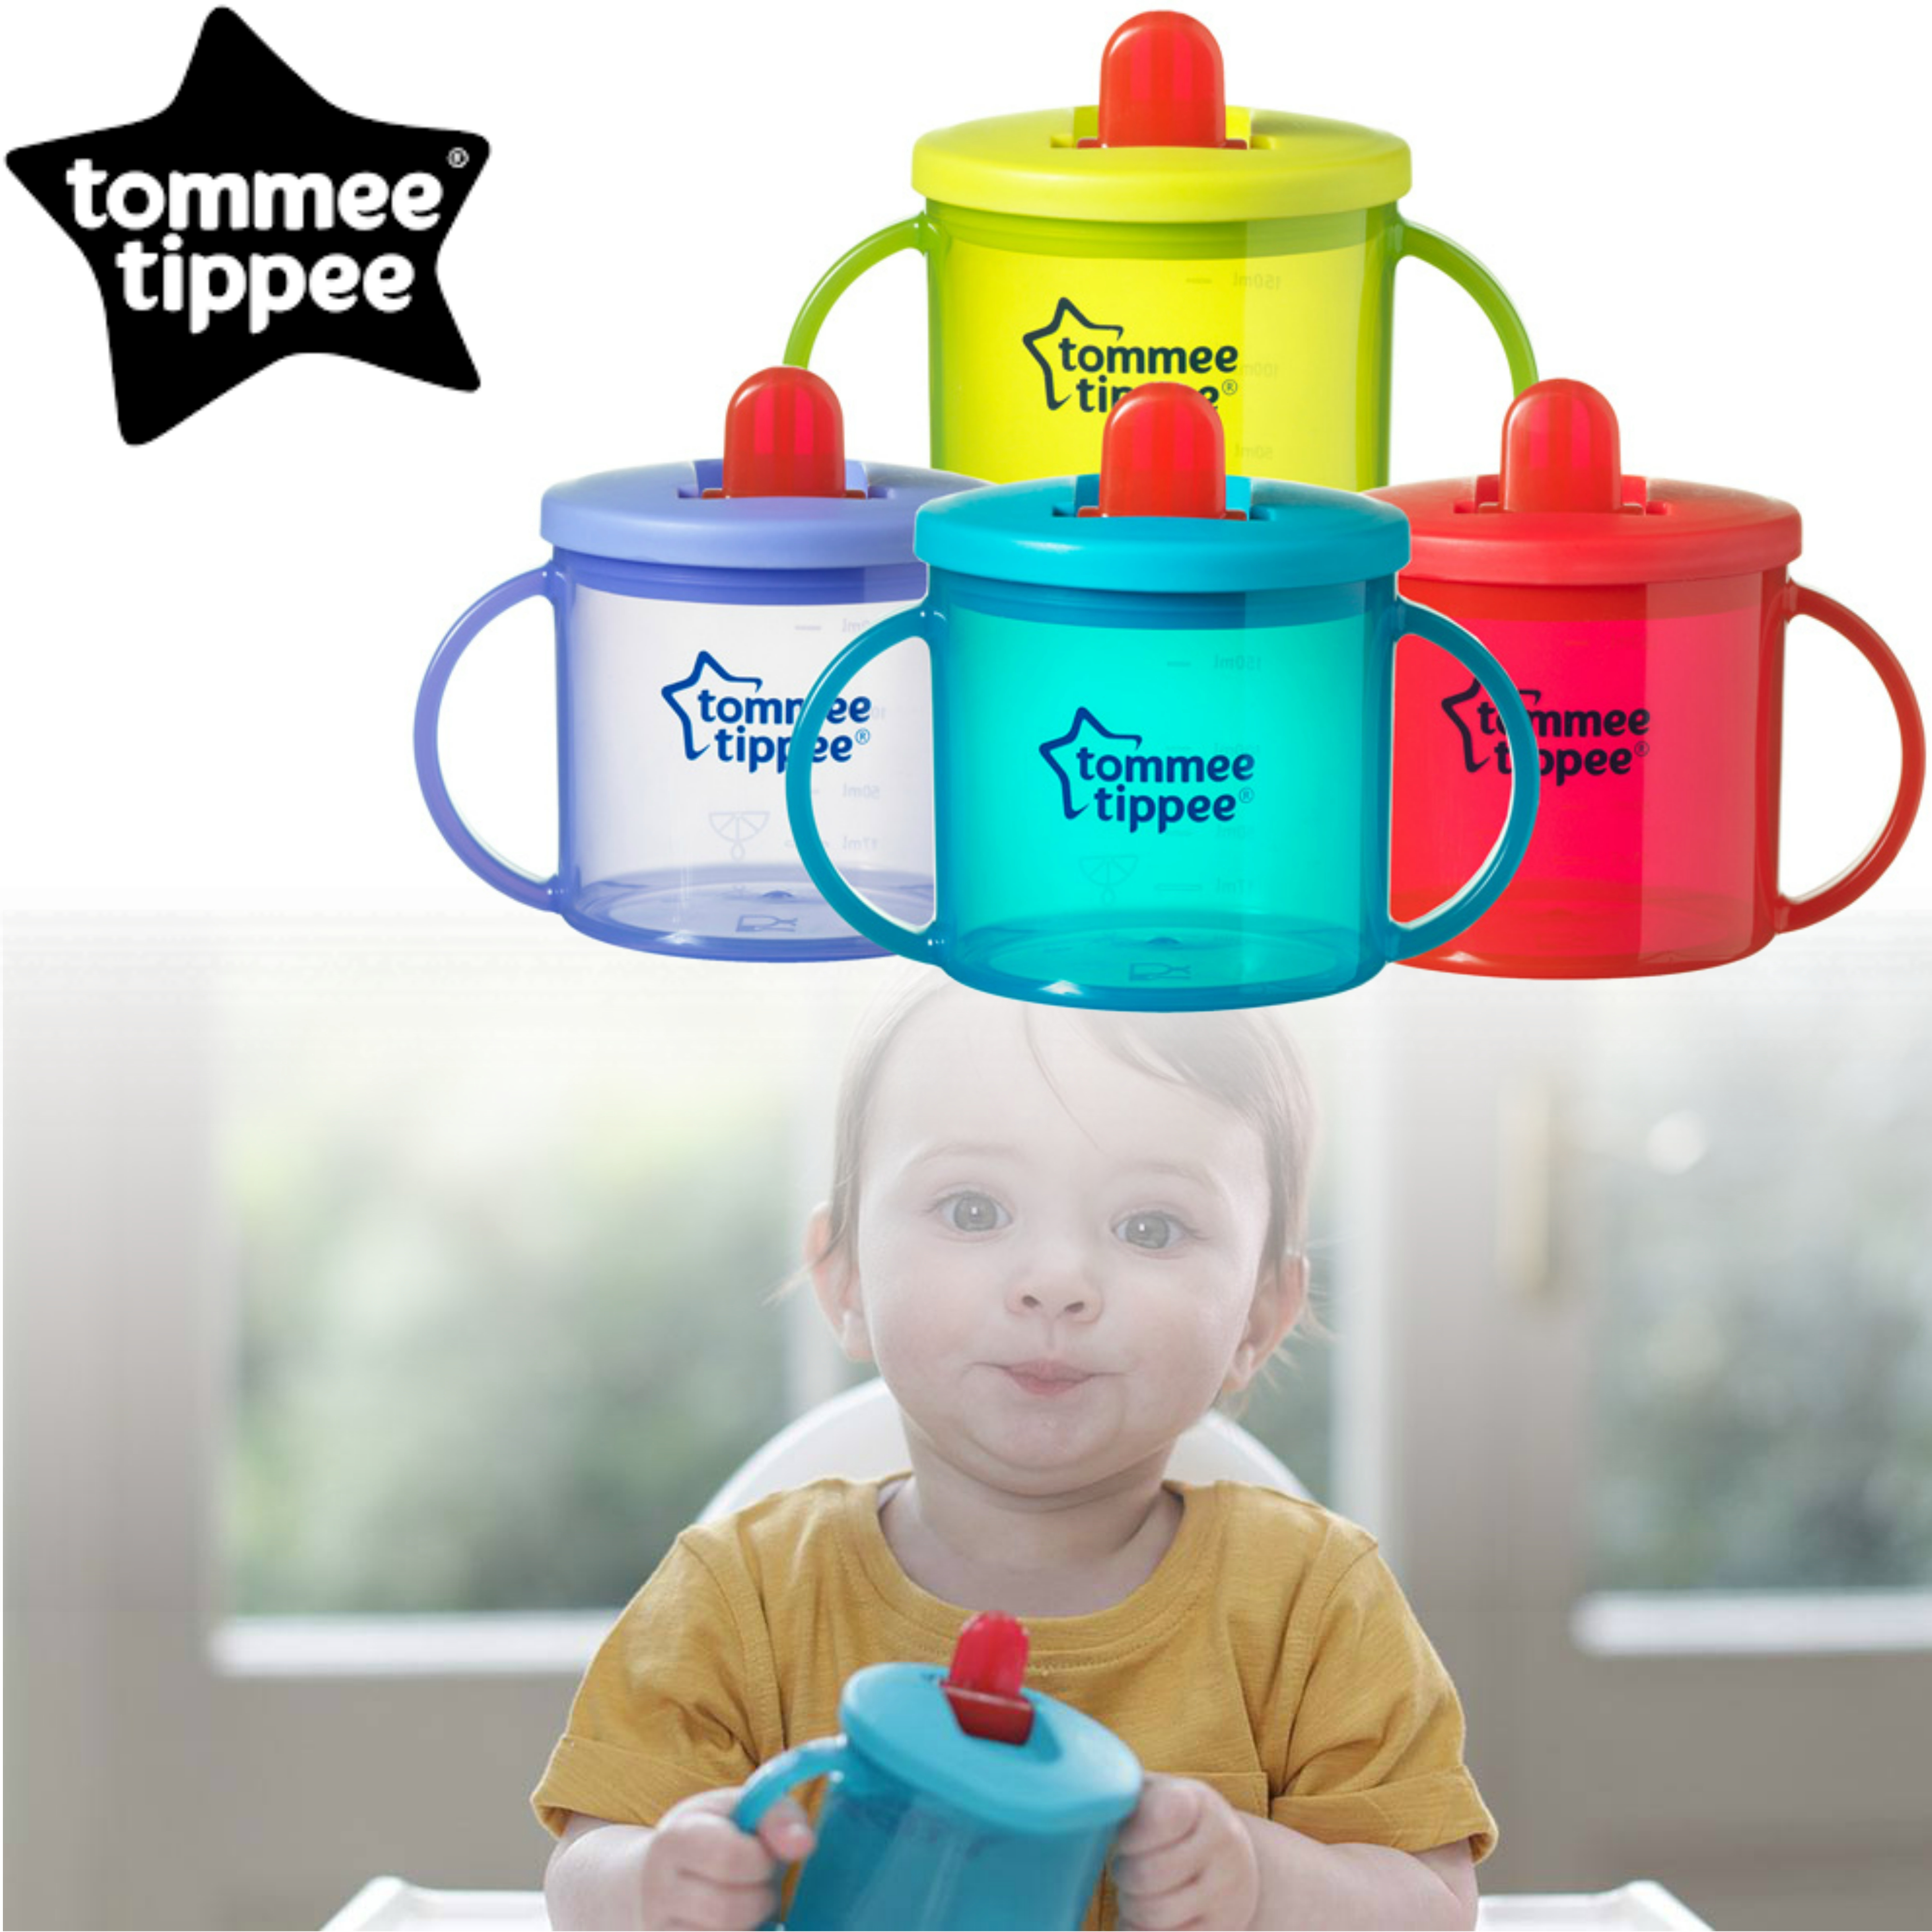 Tommee Tippee Essentials Leak-Proof Spout First Cup | Assorted Colors | BPA Free | 4m+